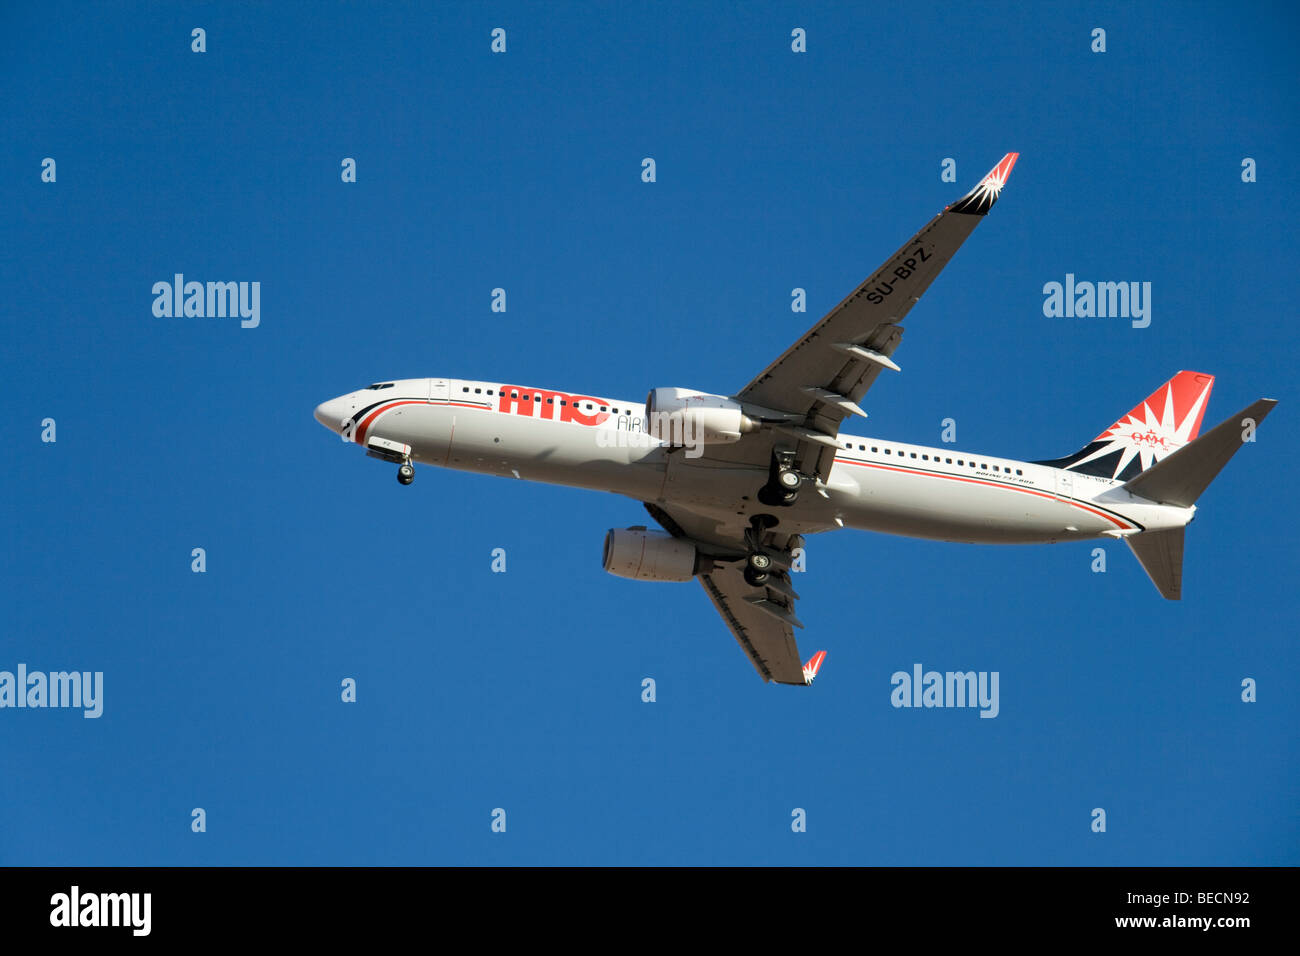 AMC Airlines Boeing 737-86N - Stock Image